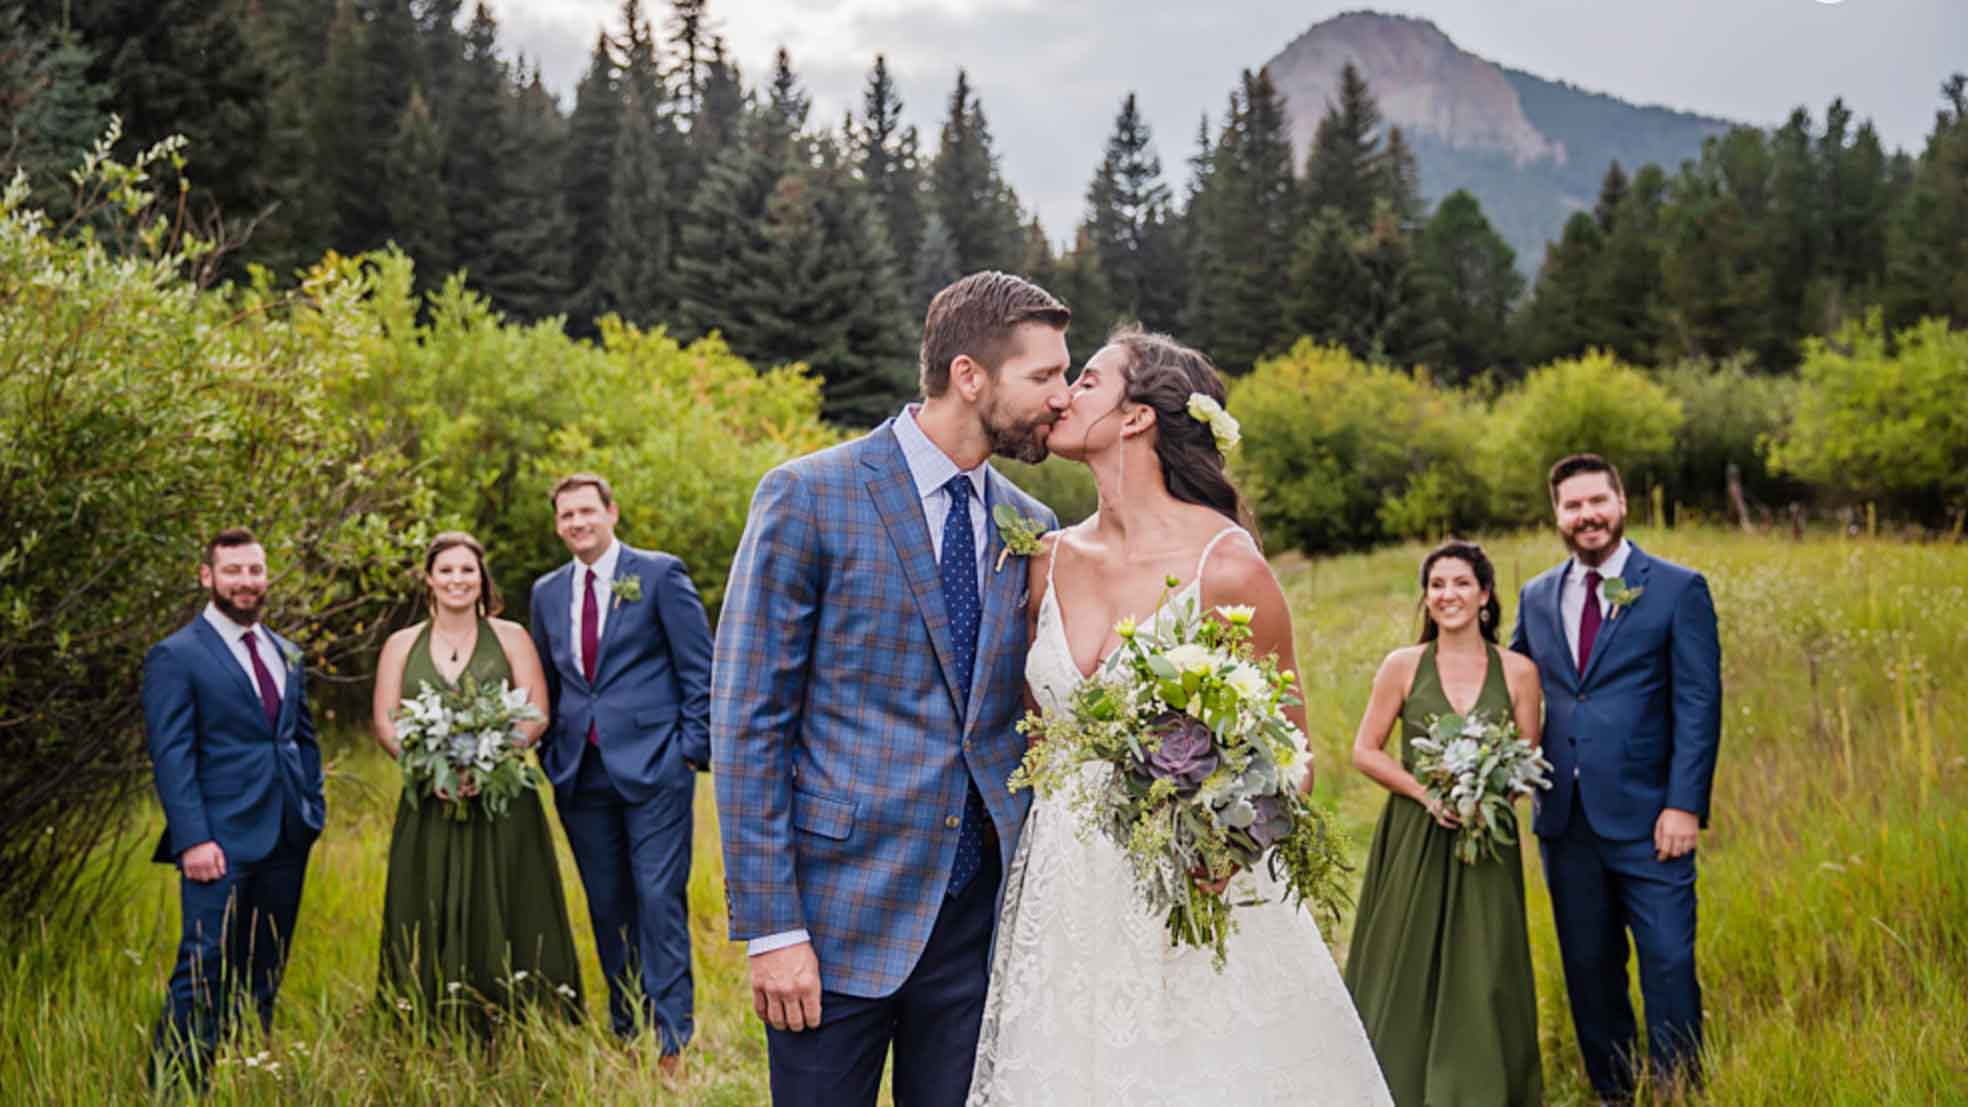 High-Fashion Mountain Wedding With Plaid Suit Jacket